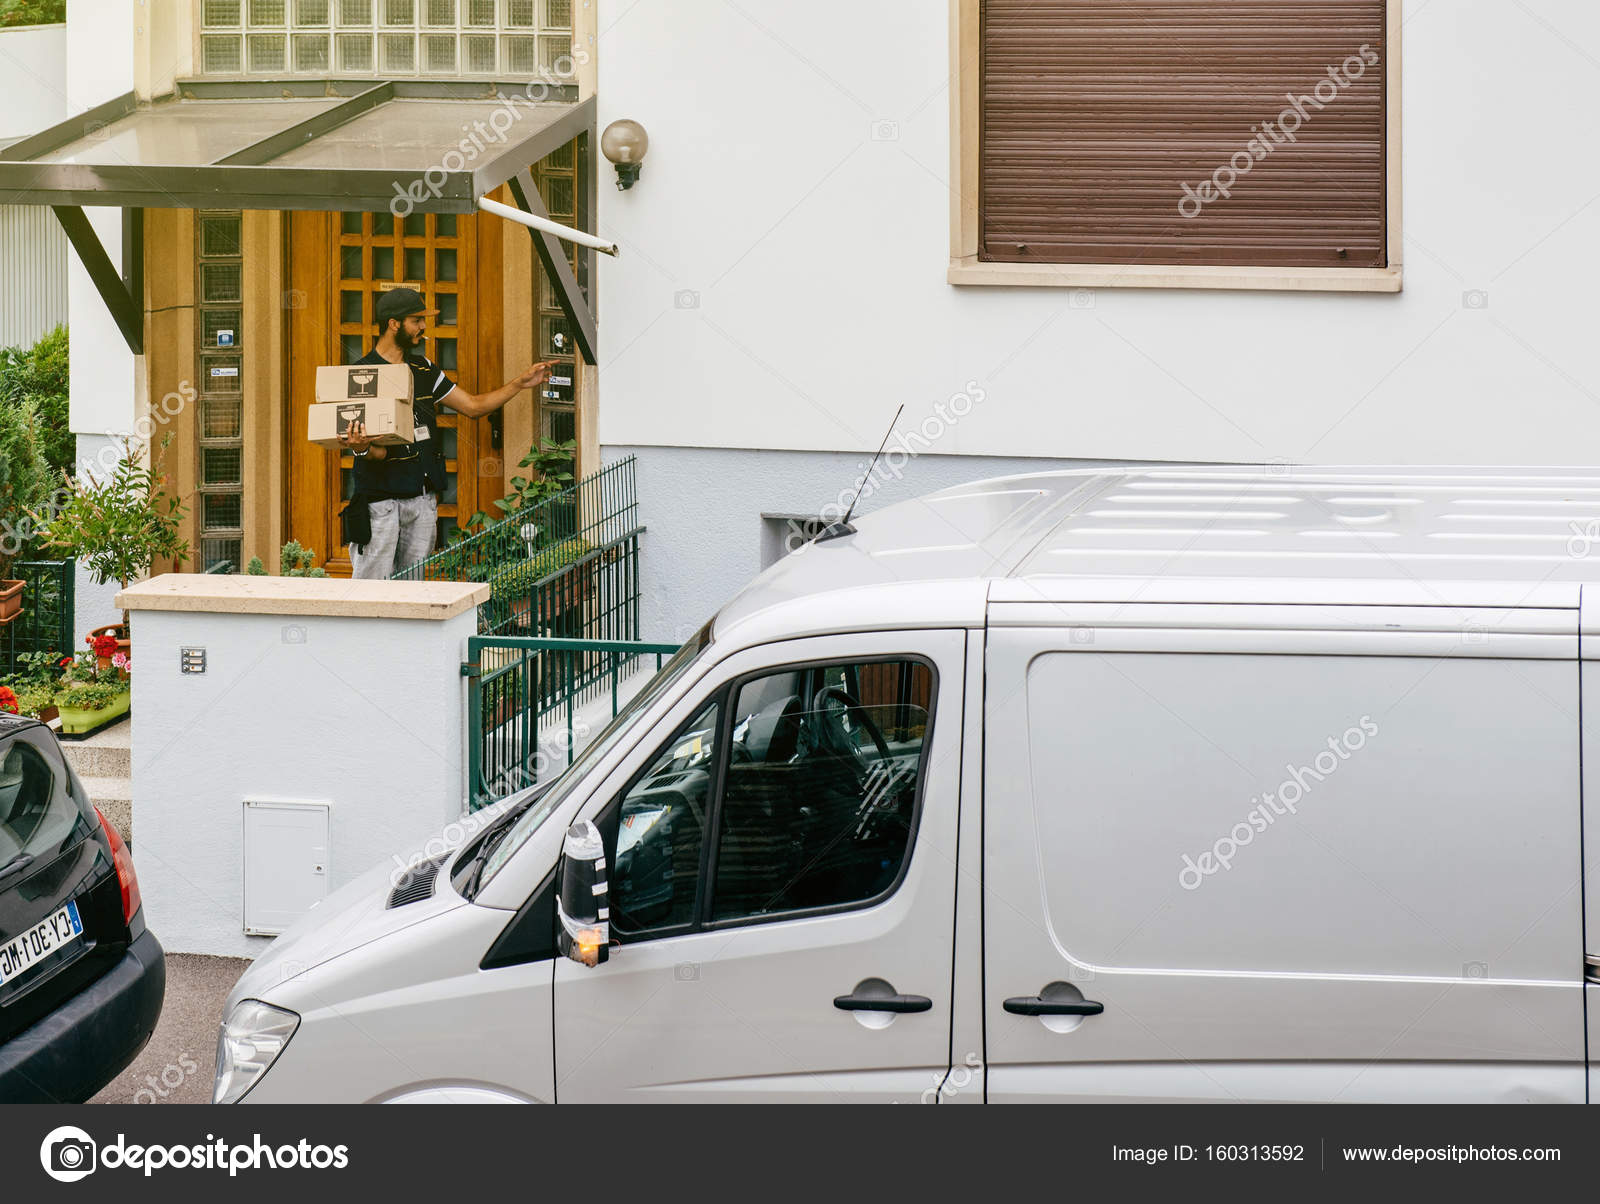 fb4a32d8cb Delivery man with parcel at the door – Stock Editorial Photo ...